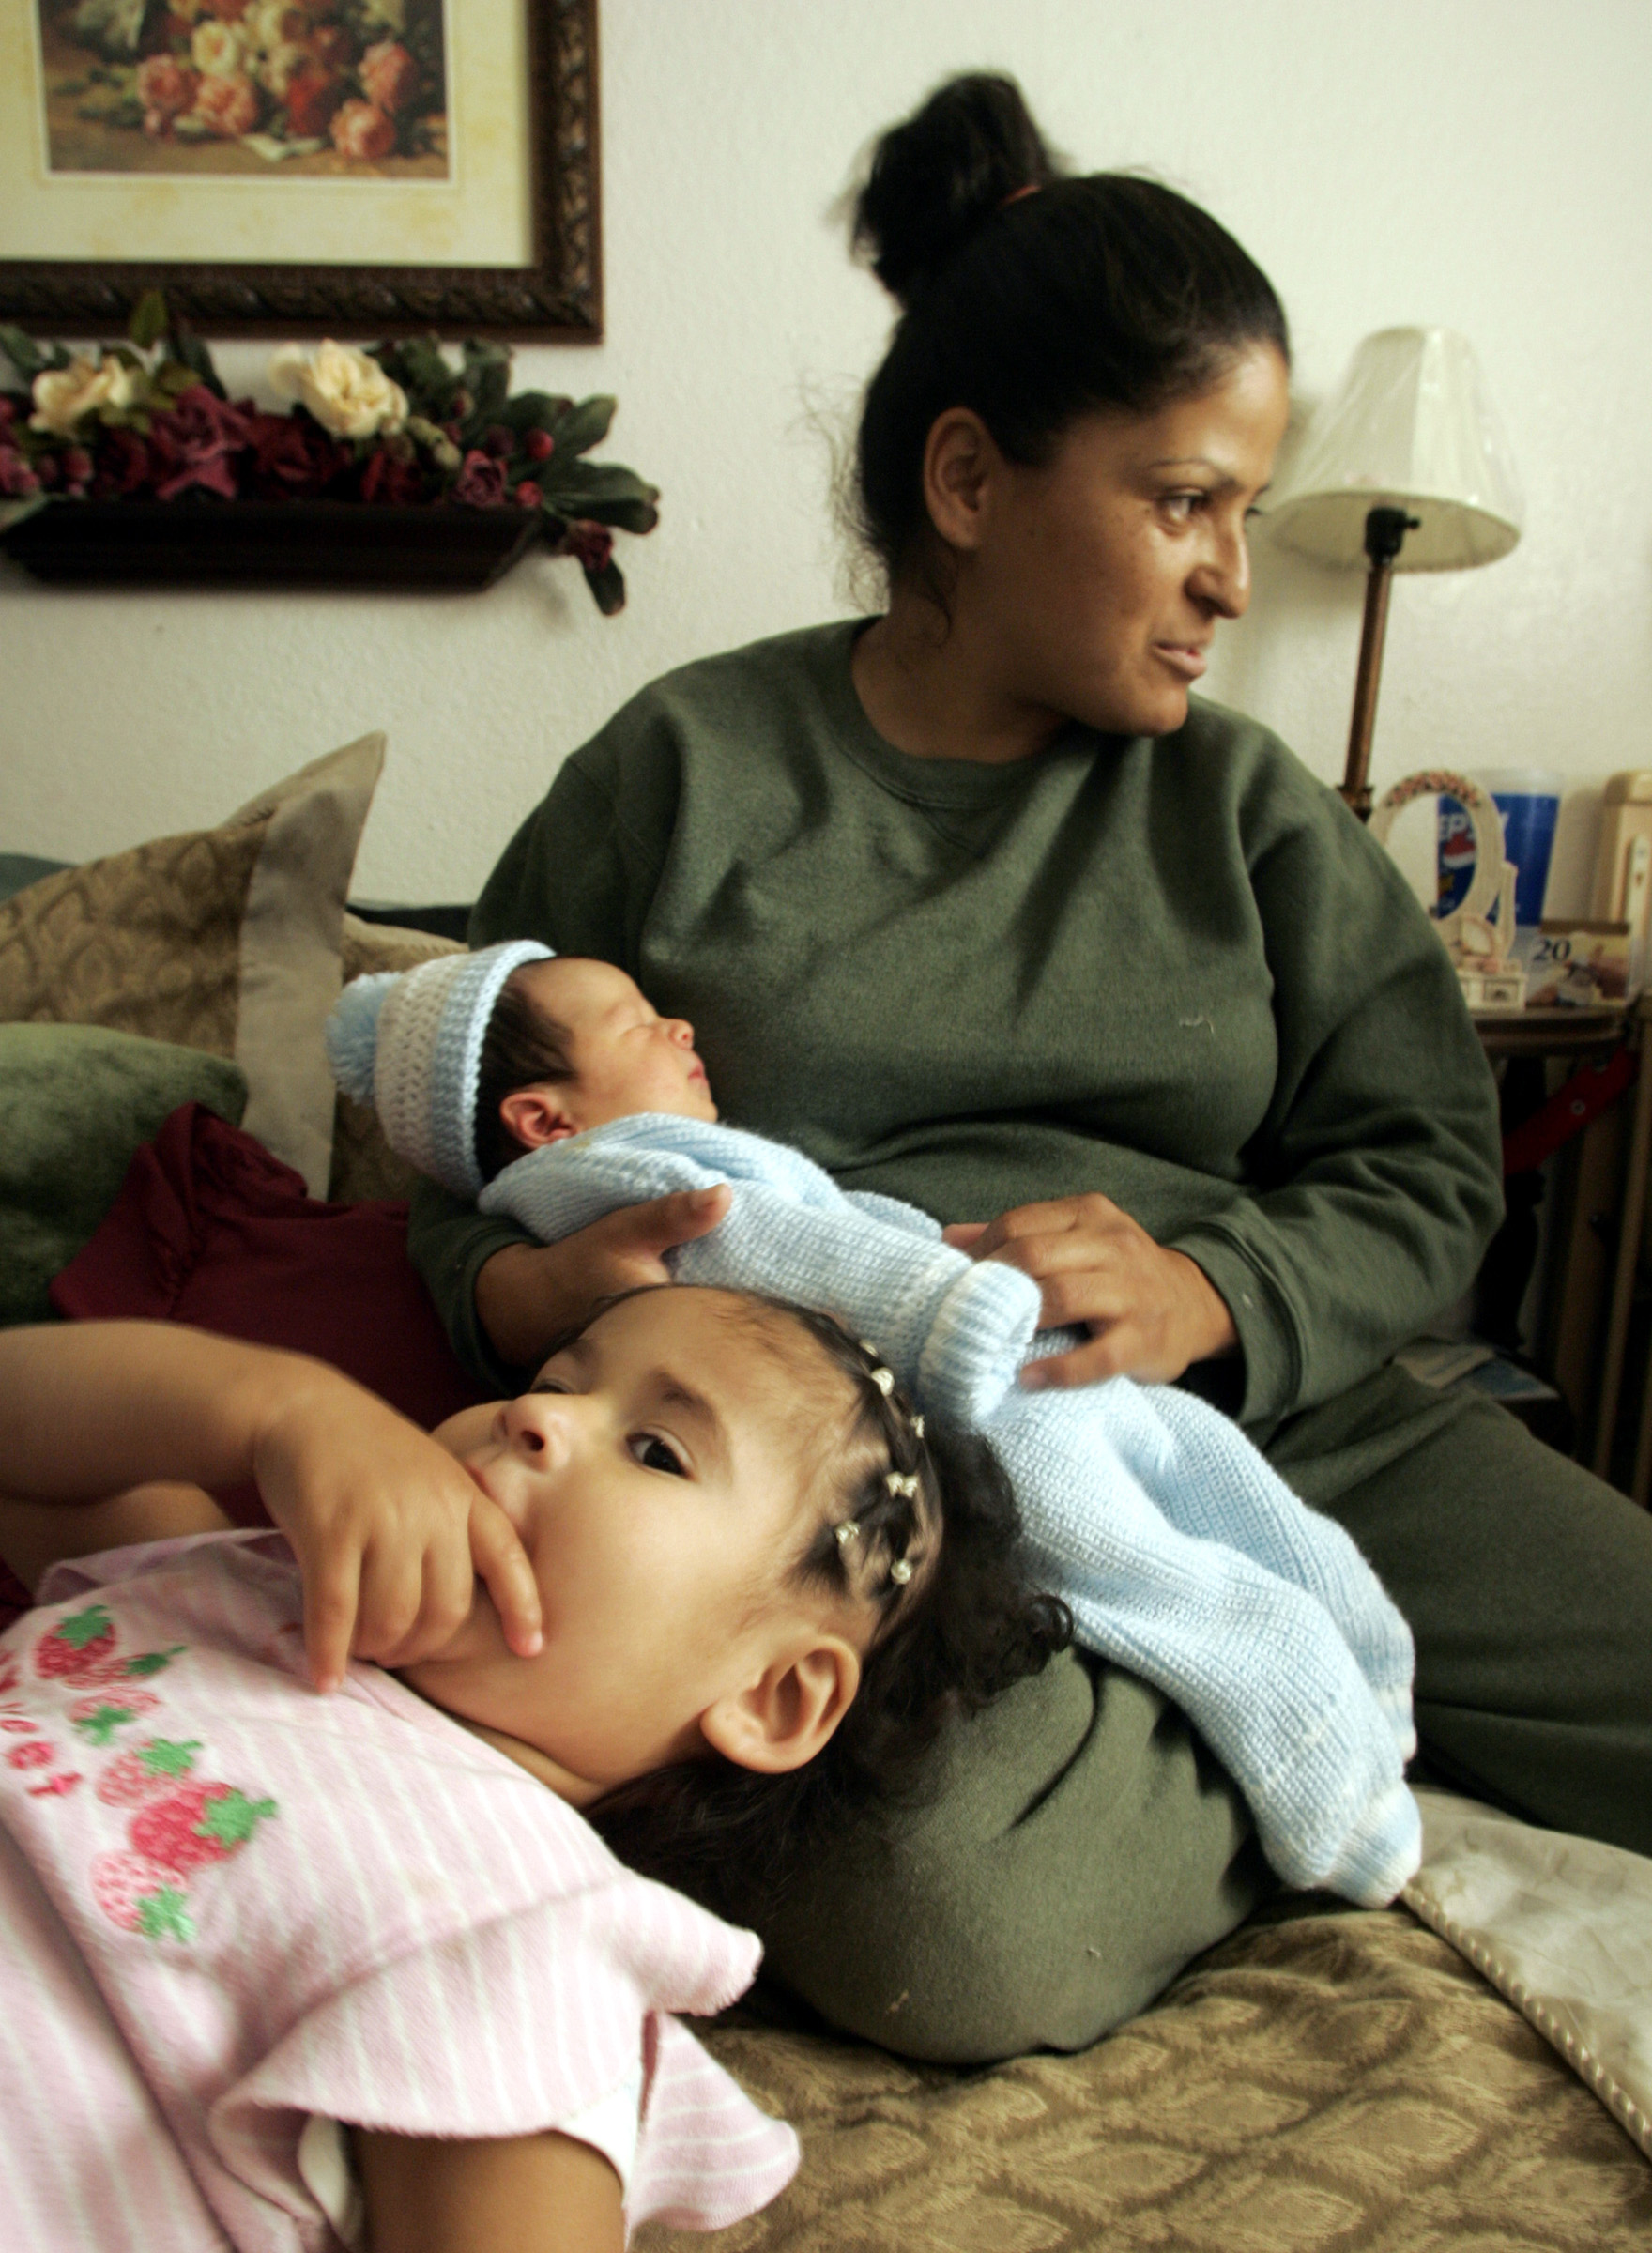 (Phoenix,AZ)–Virgilia Garcia gave birth to her daughter Nareda,1, (foreground) and her son Brando (i